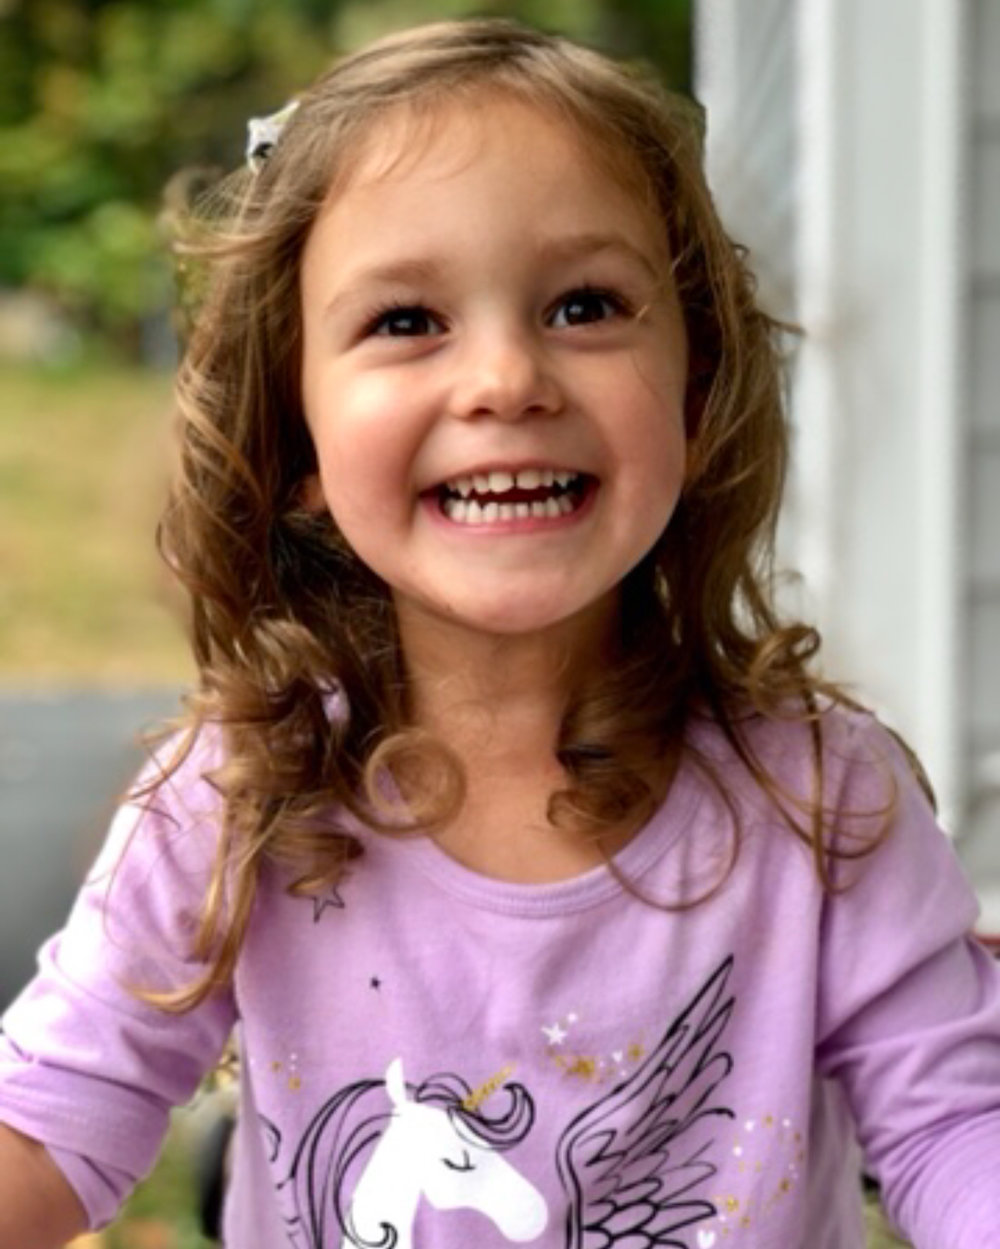 Why do I need help? - I am a single mother of a beautiful, bright three year old named Willa. Since my disease worsens with activity and improves with rest, I now require assistance with daily tasks of living to avoid respiratory crisis. Willa fights hard to be brave for me while I fight hard to get better for her.